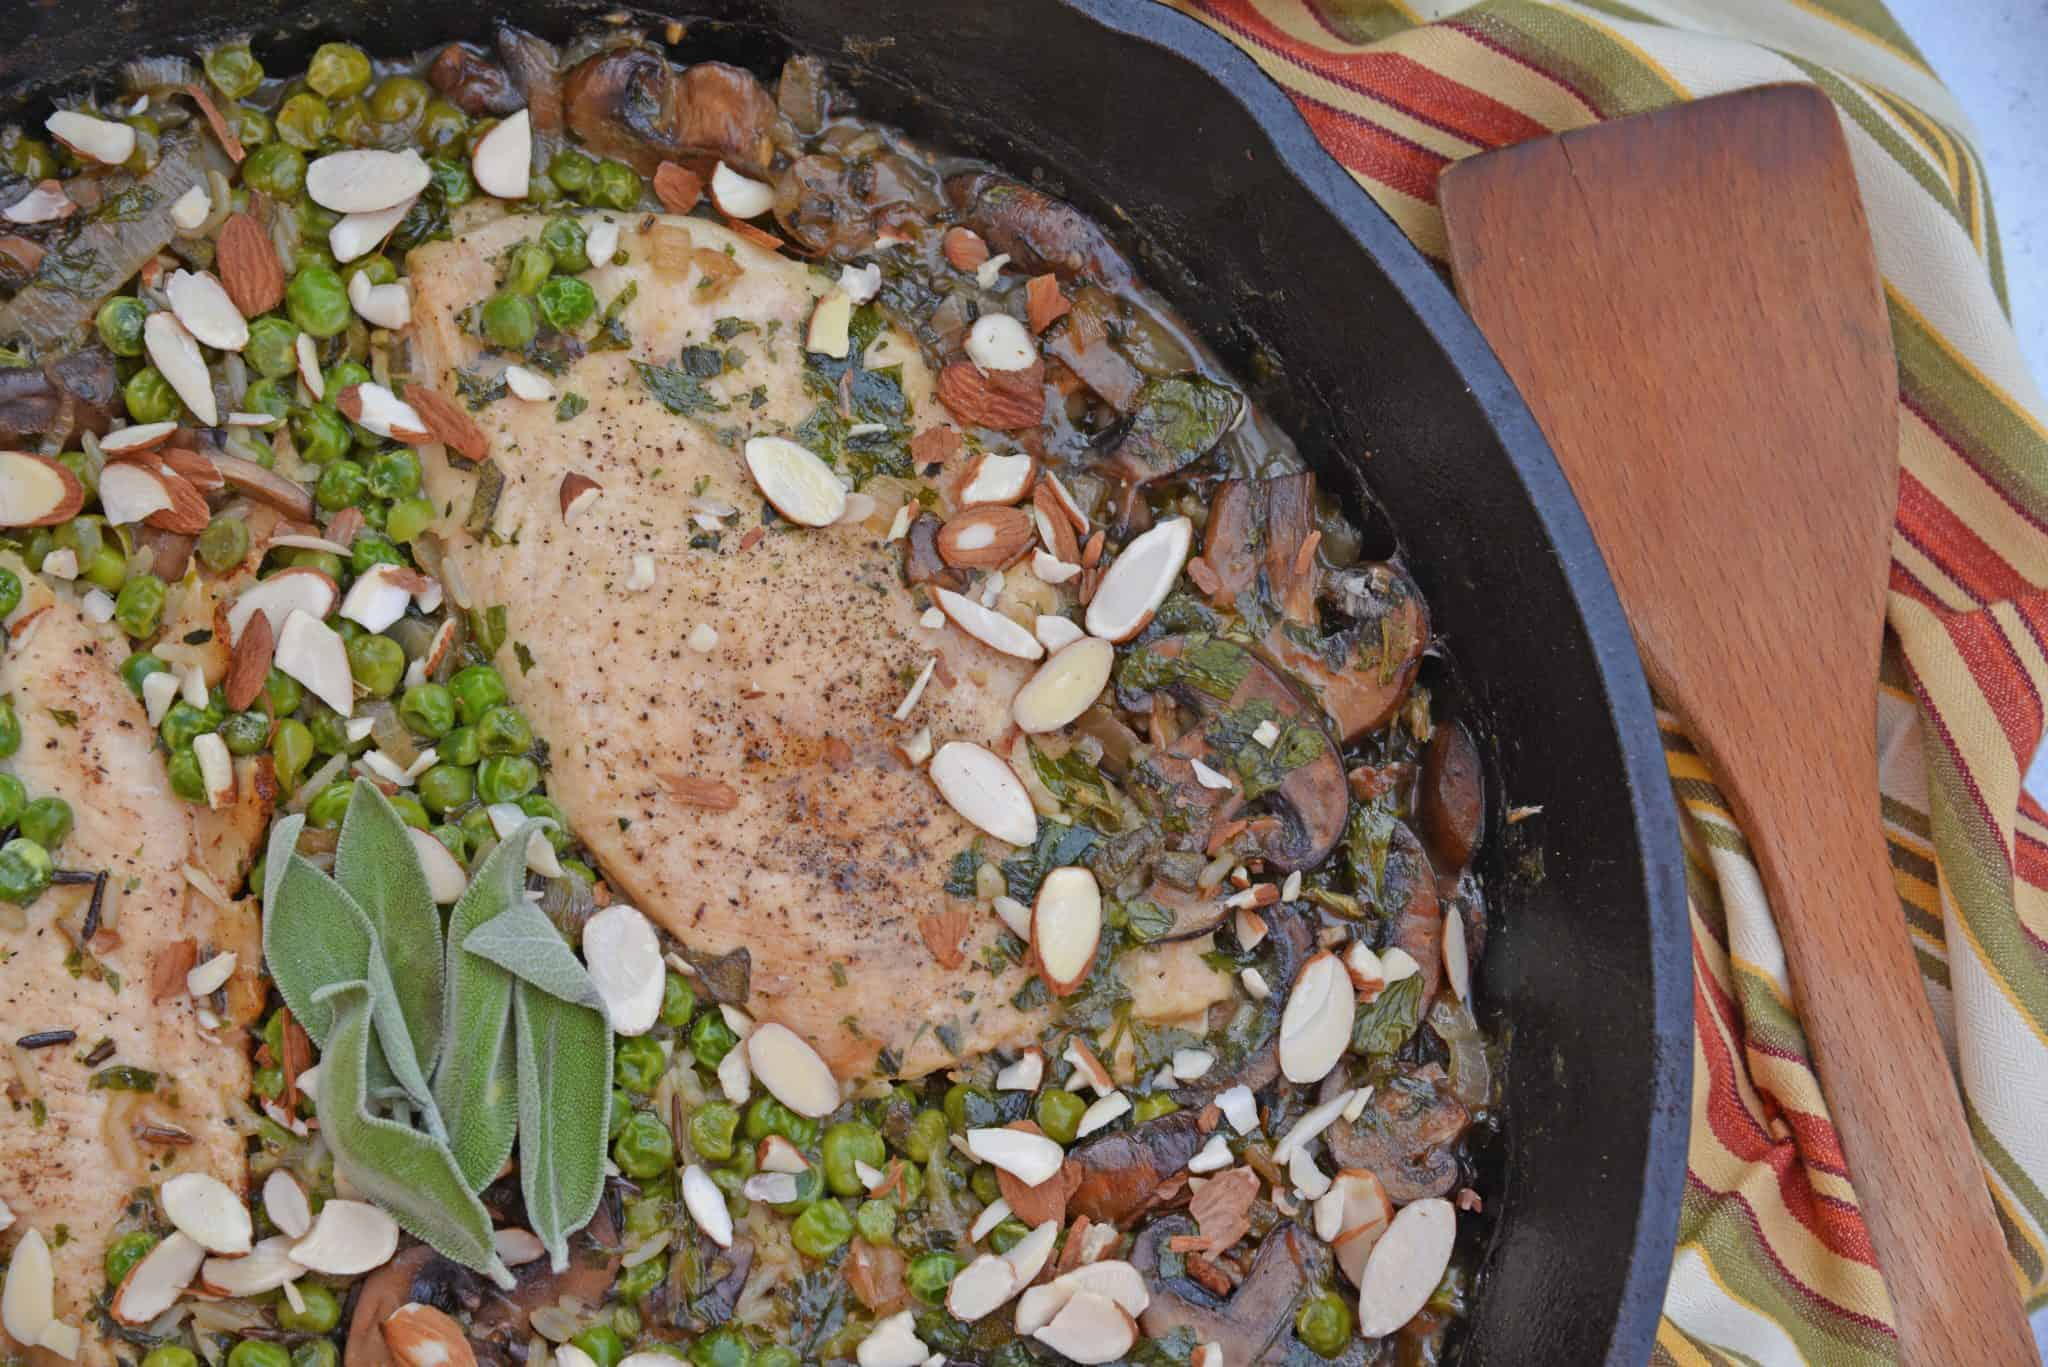 Mushroom, chicken and rice in a skillet - skillet meals